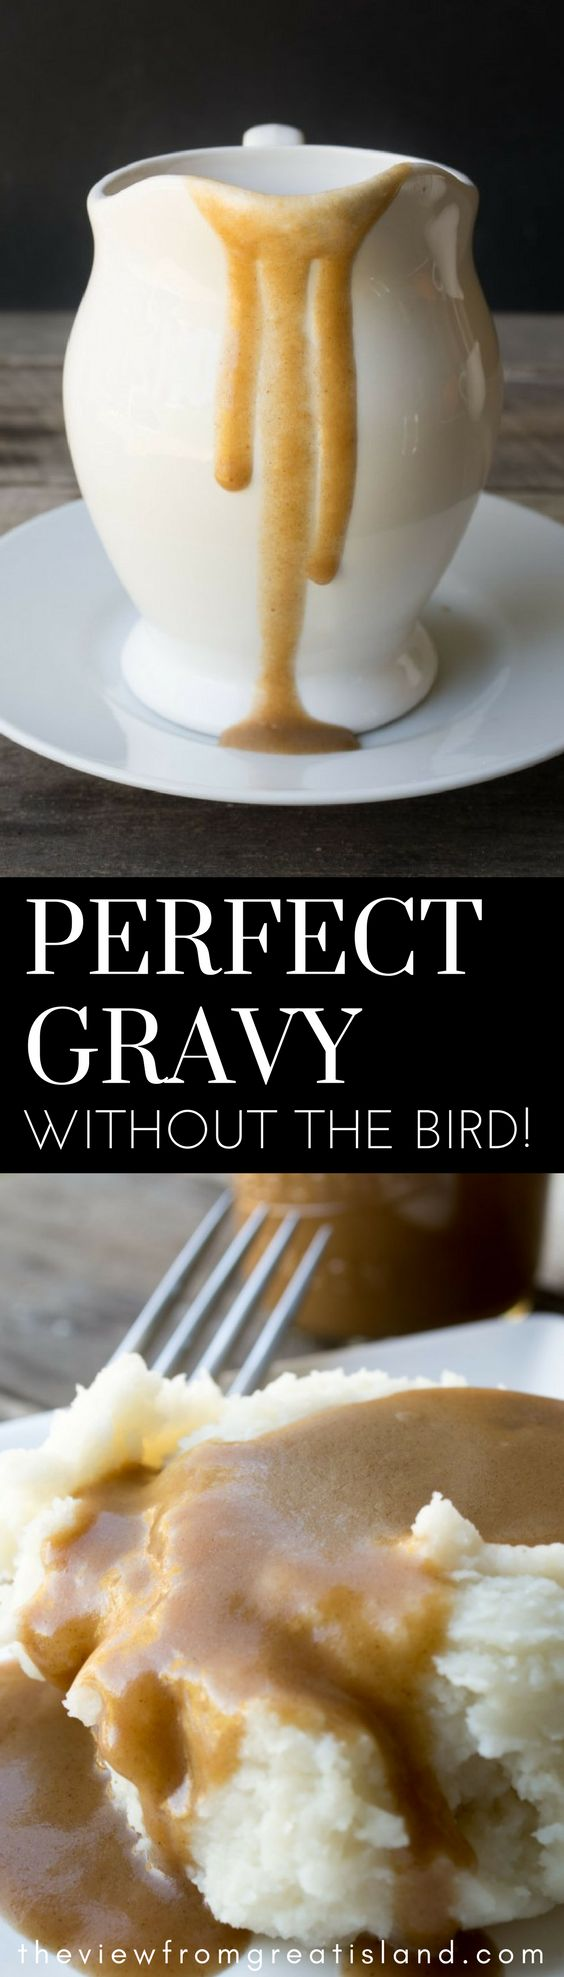 Perfect Gravy:  takes a bit of prep--must brown the flour in oven first